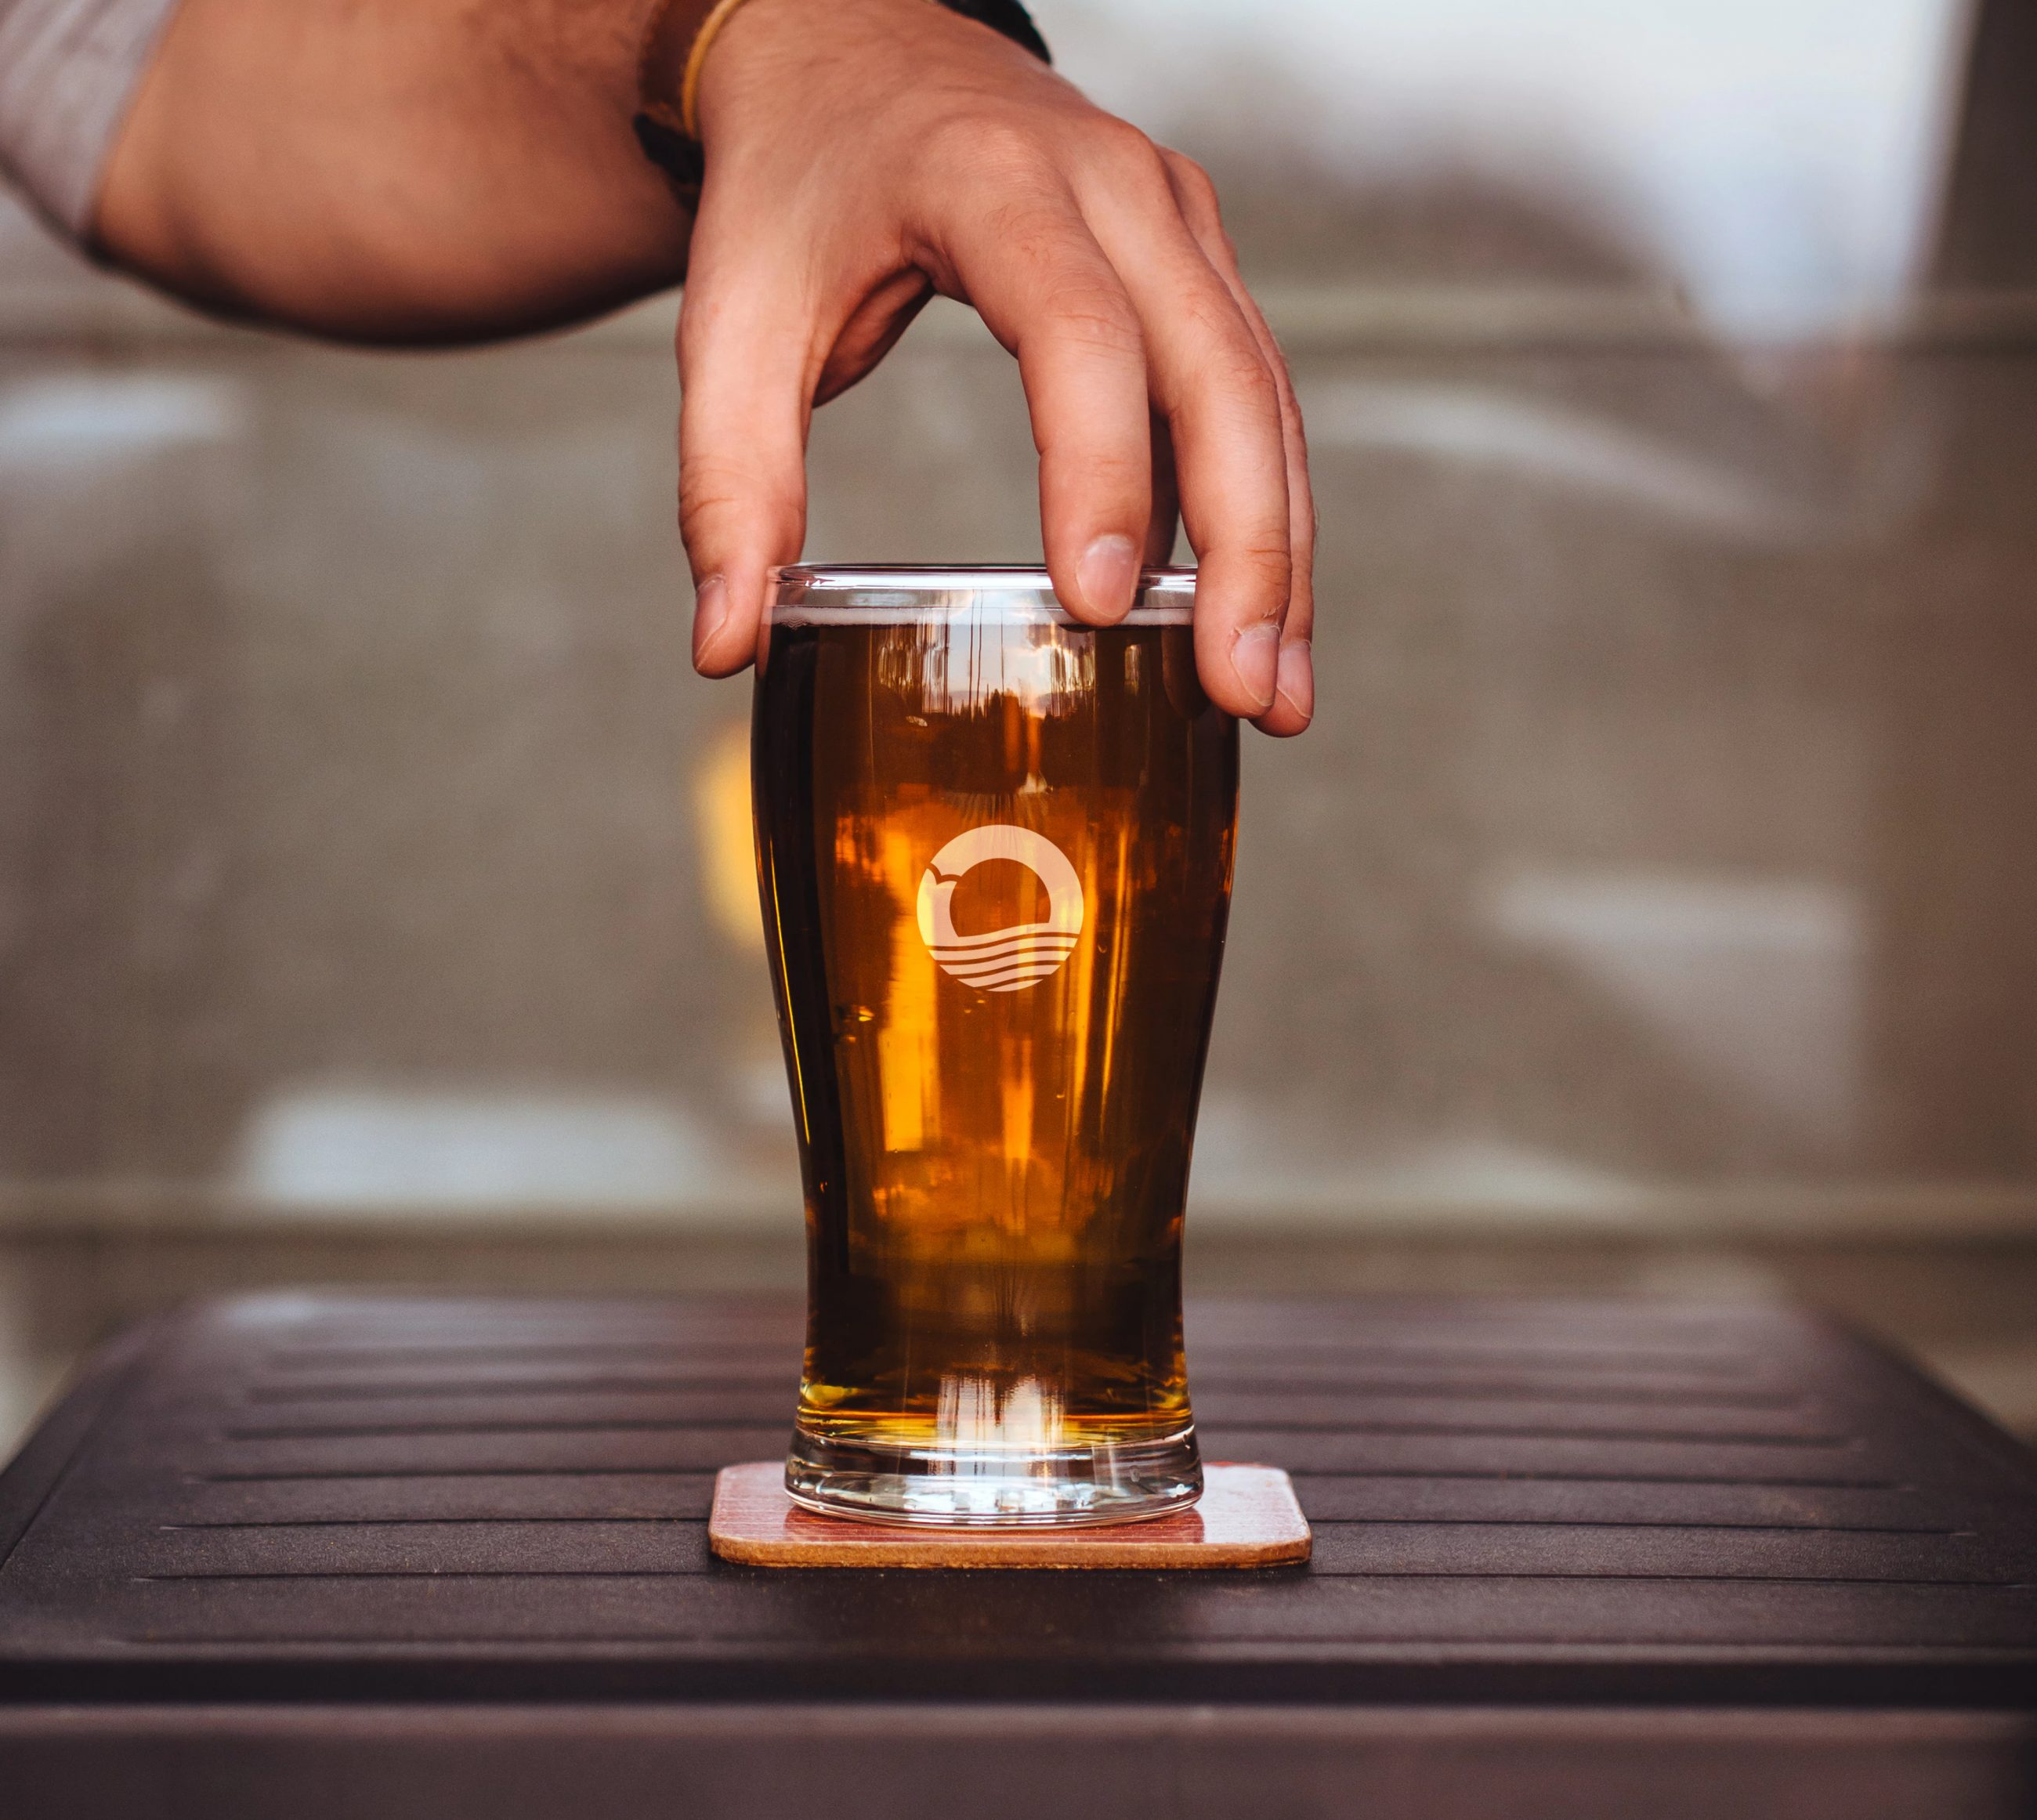 Branded glassware with new brand icon